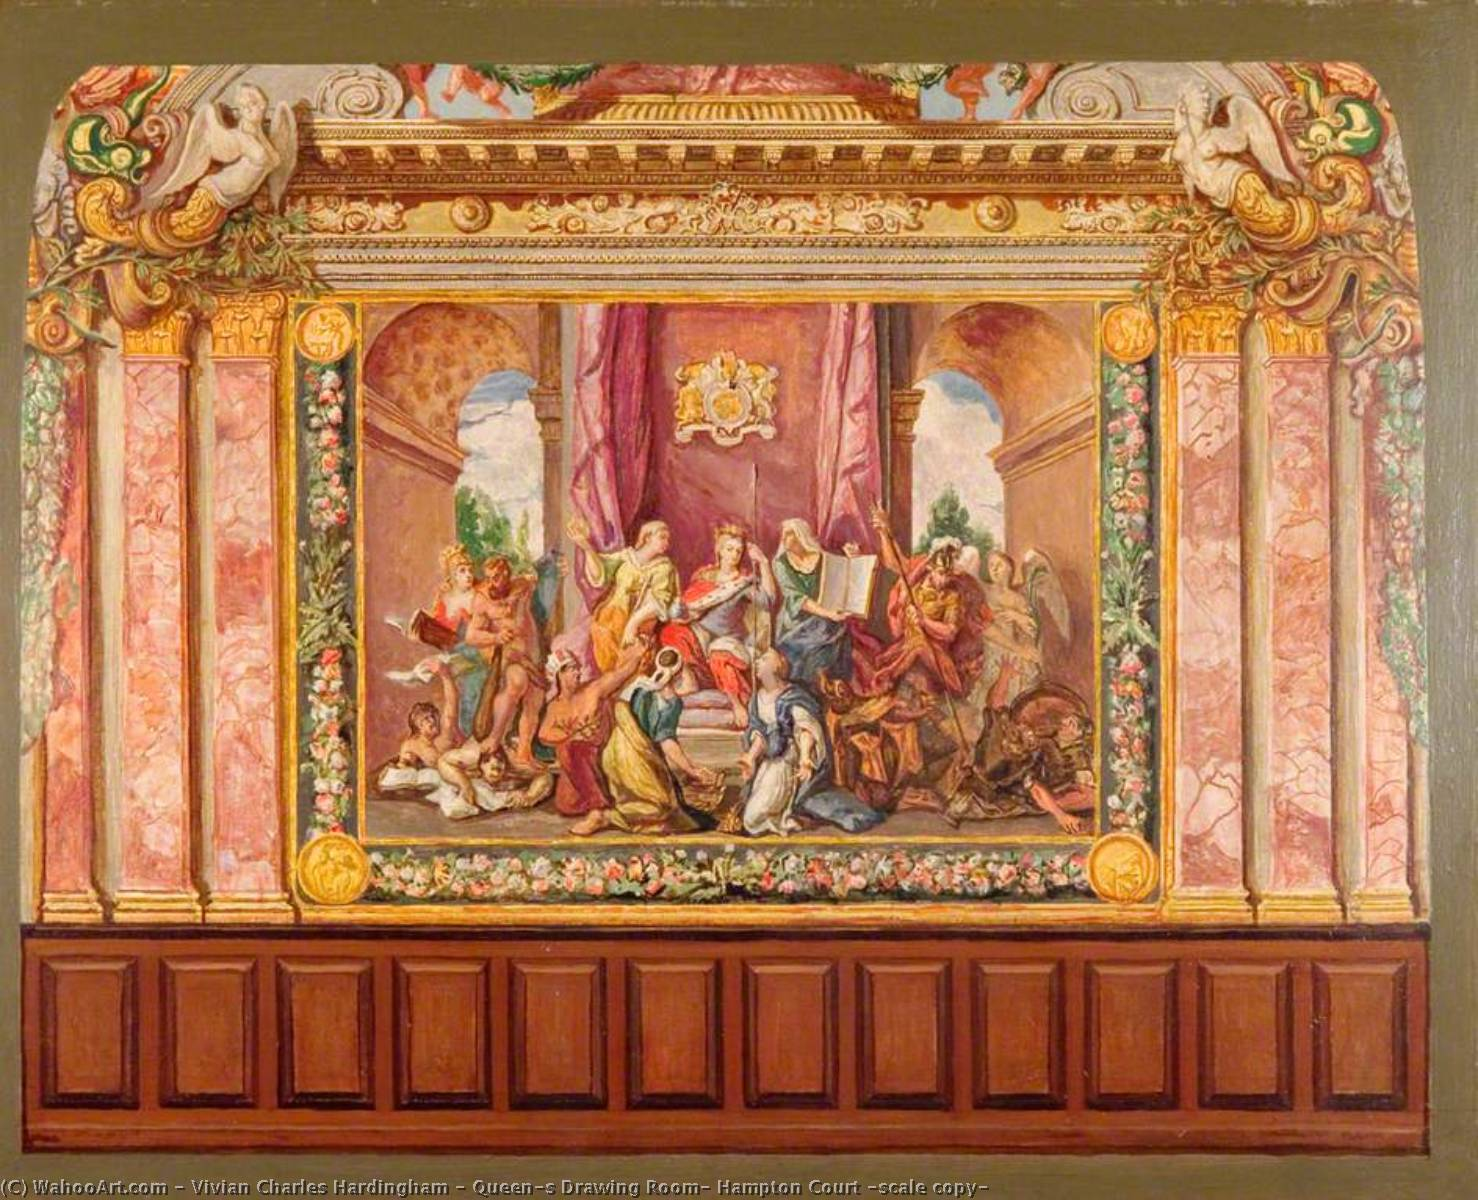 Queen's Drawing Room, Hampton Court (scale copy) by Vivian Charles Hardingham | WahooArt.com